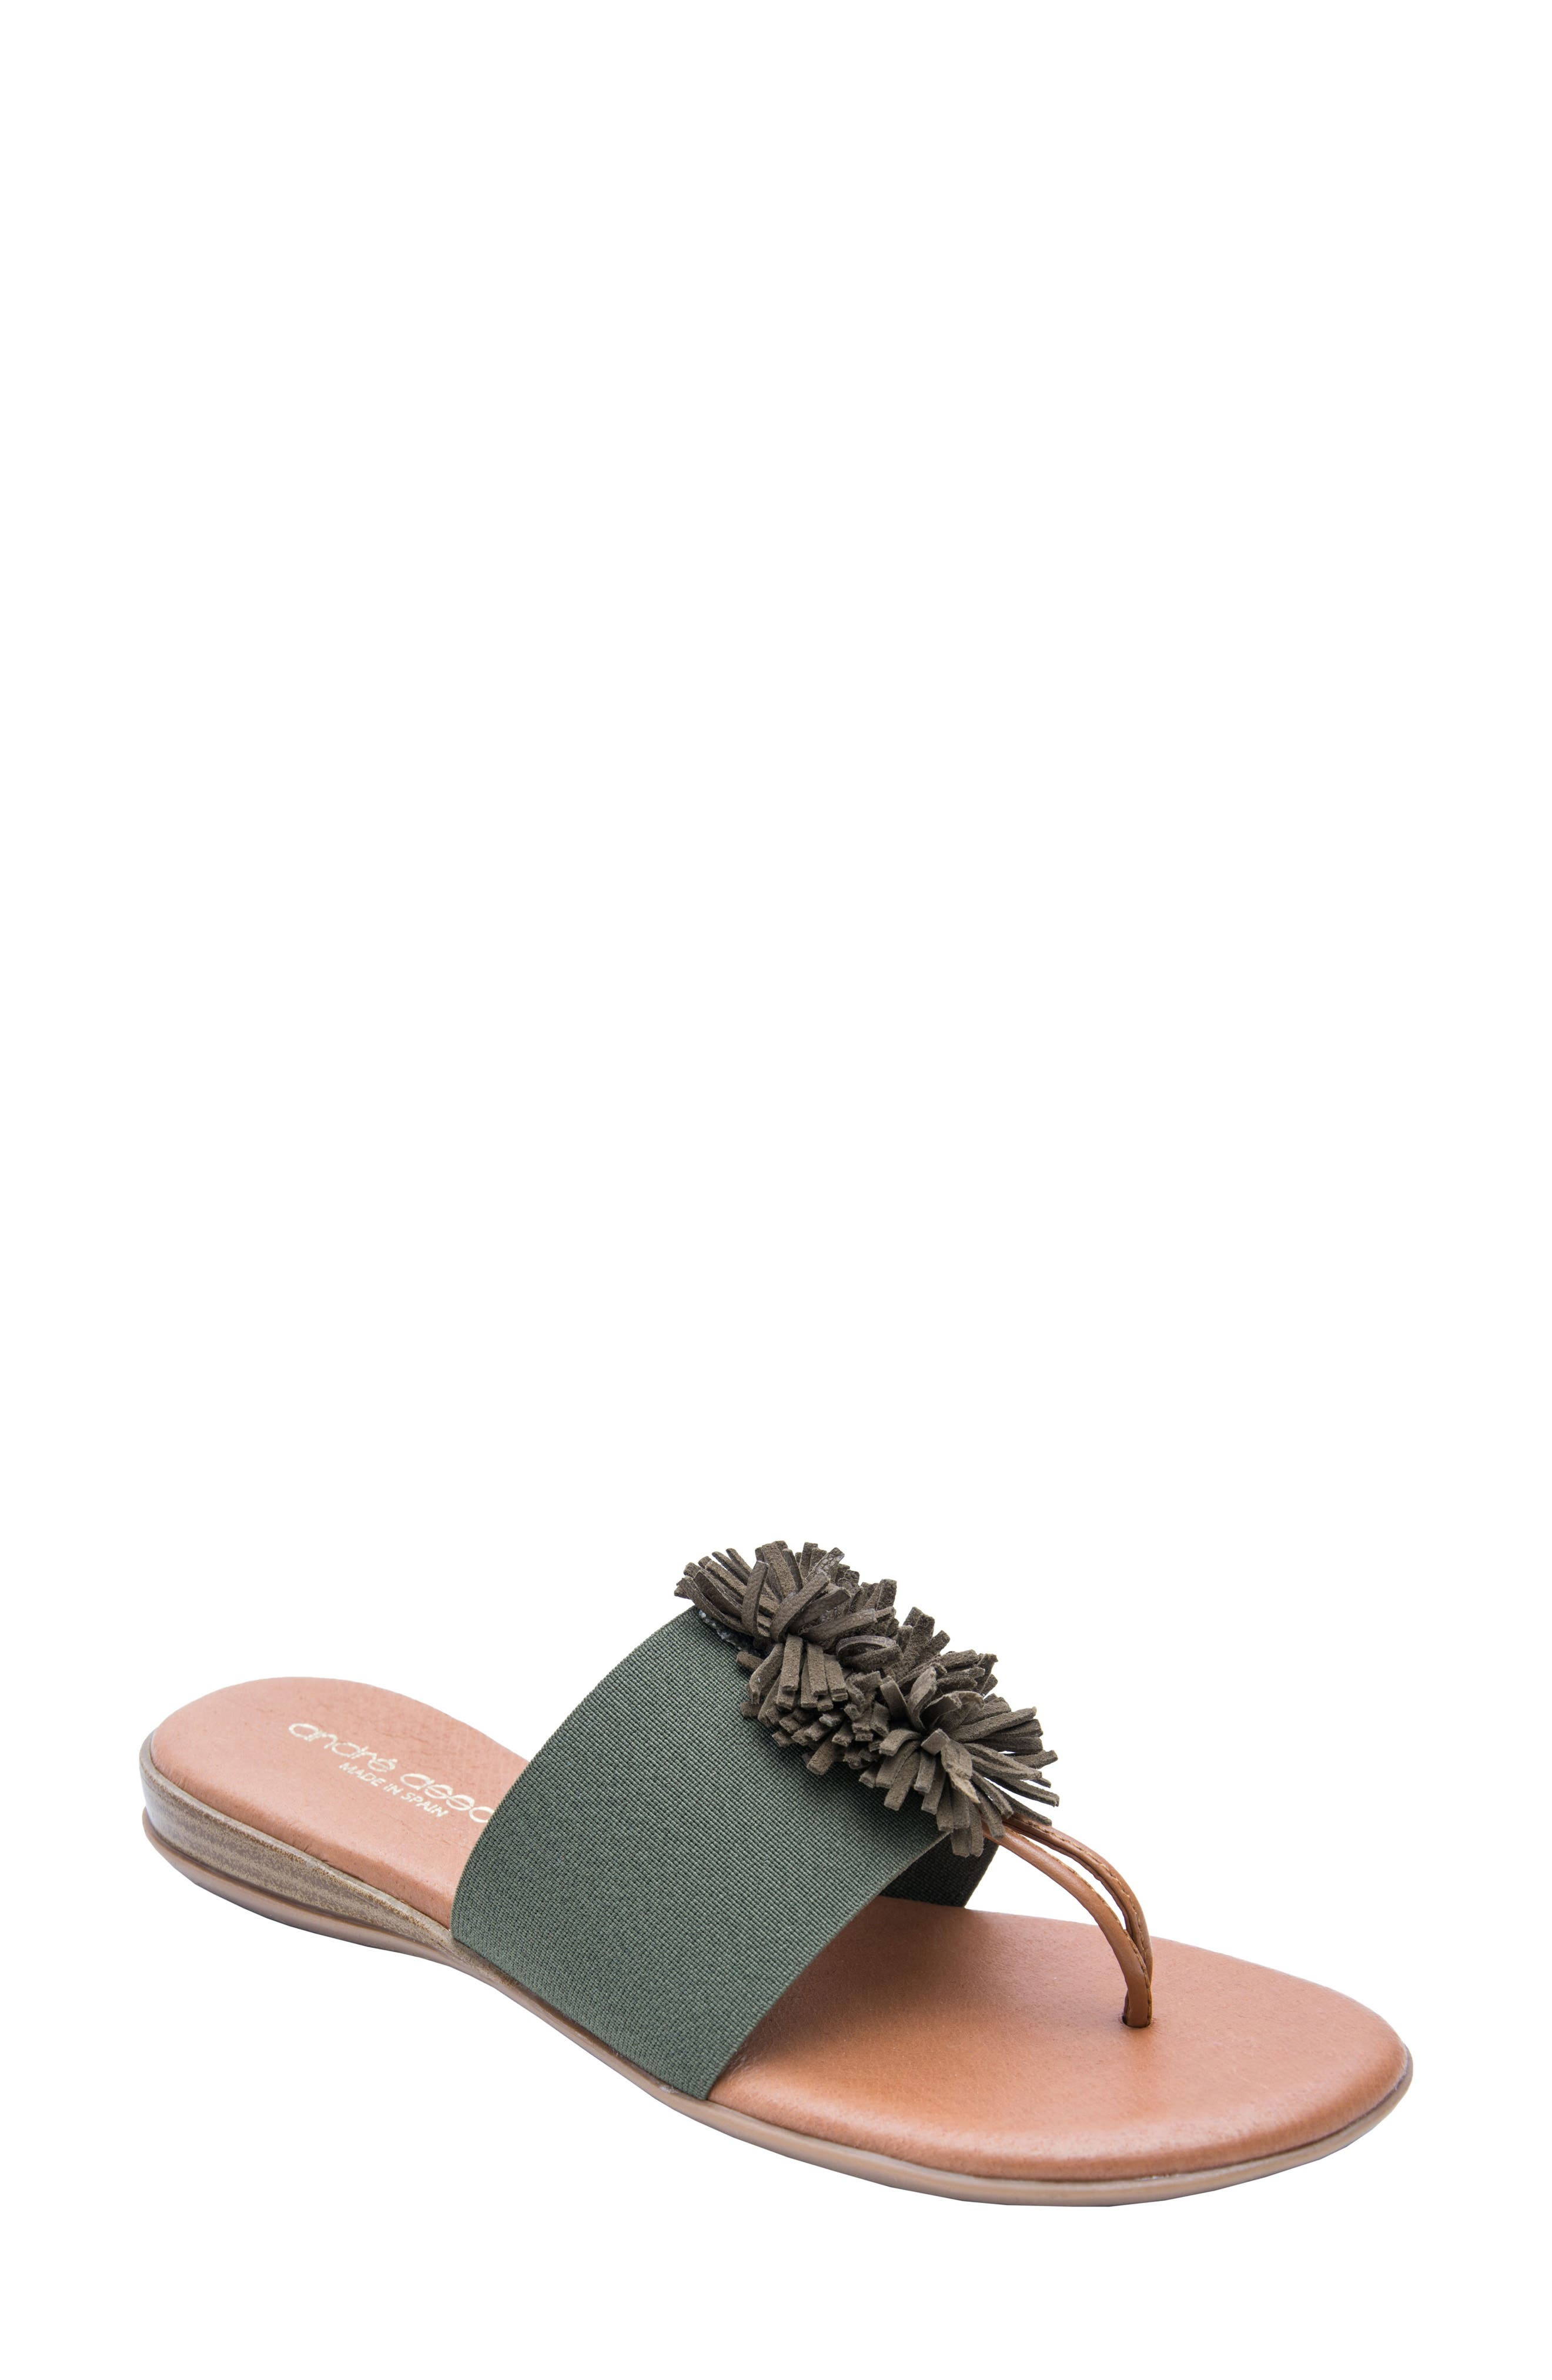 ANDRE ASSOUS Novalee Sandal in Forest Green Fabric